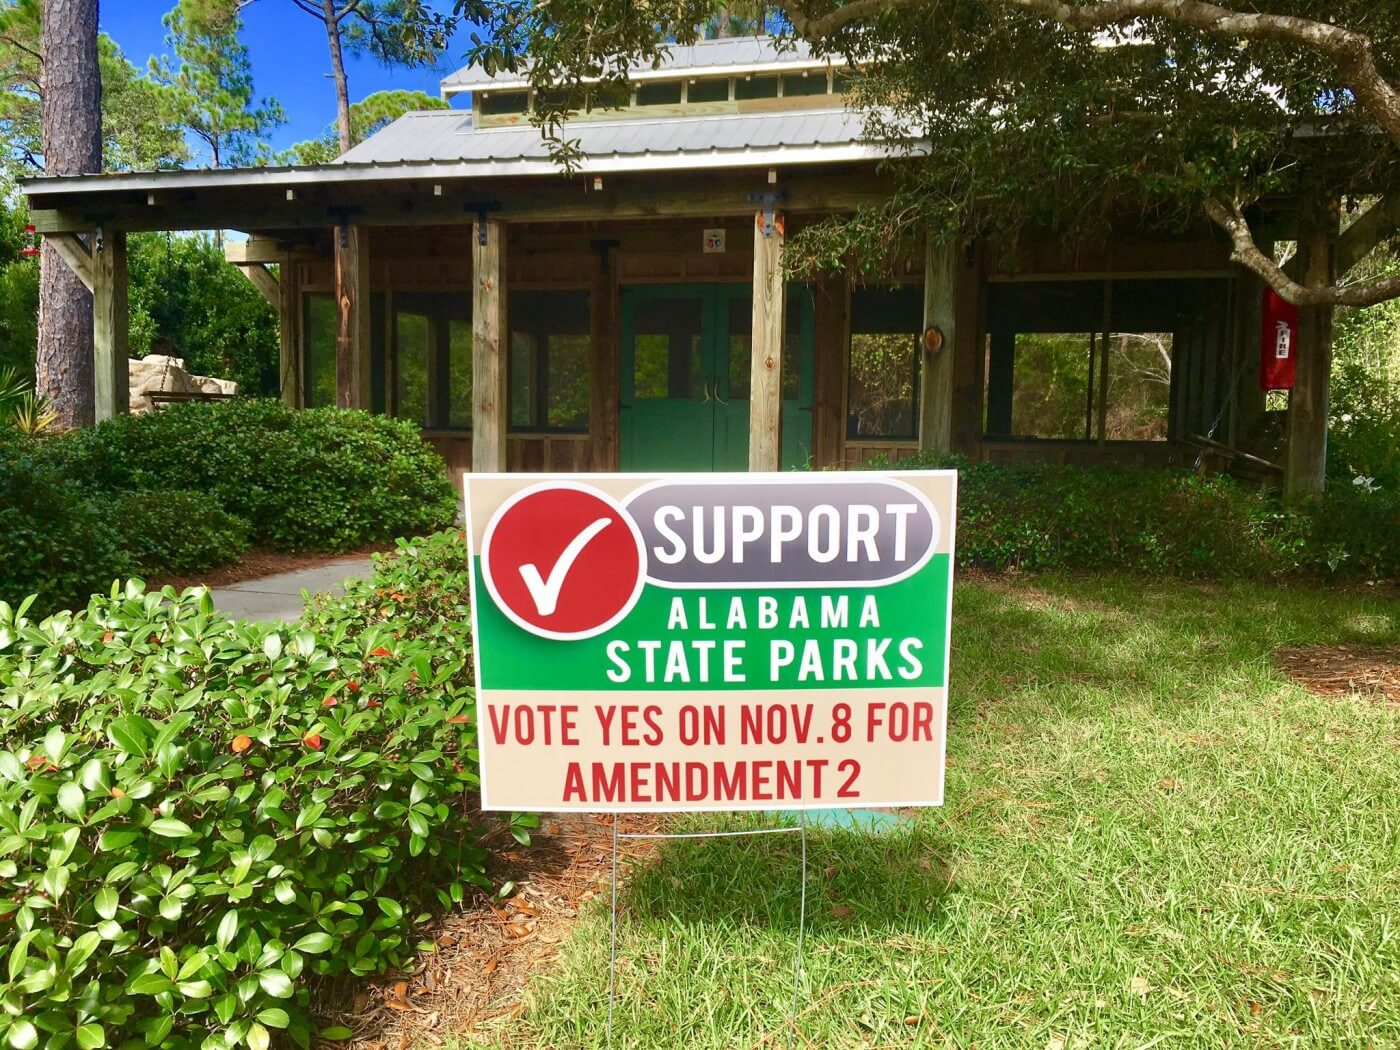 (facebook.com/pg/GulfStatePark) Park and tourism officials are urging voters to pass a referendum to prohibit revenue generated by state parks from being diverted to the General Fund.